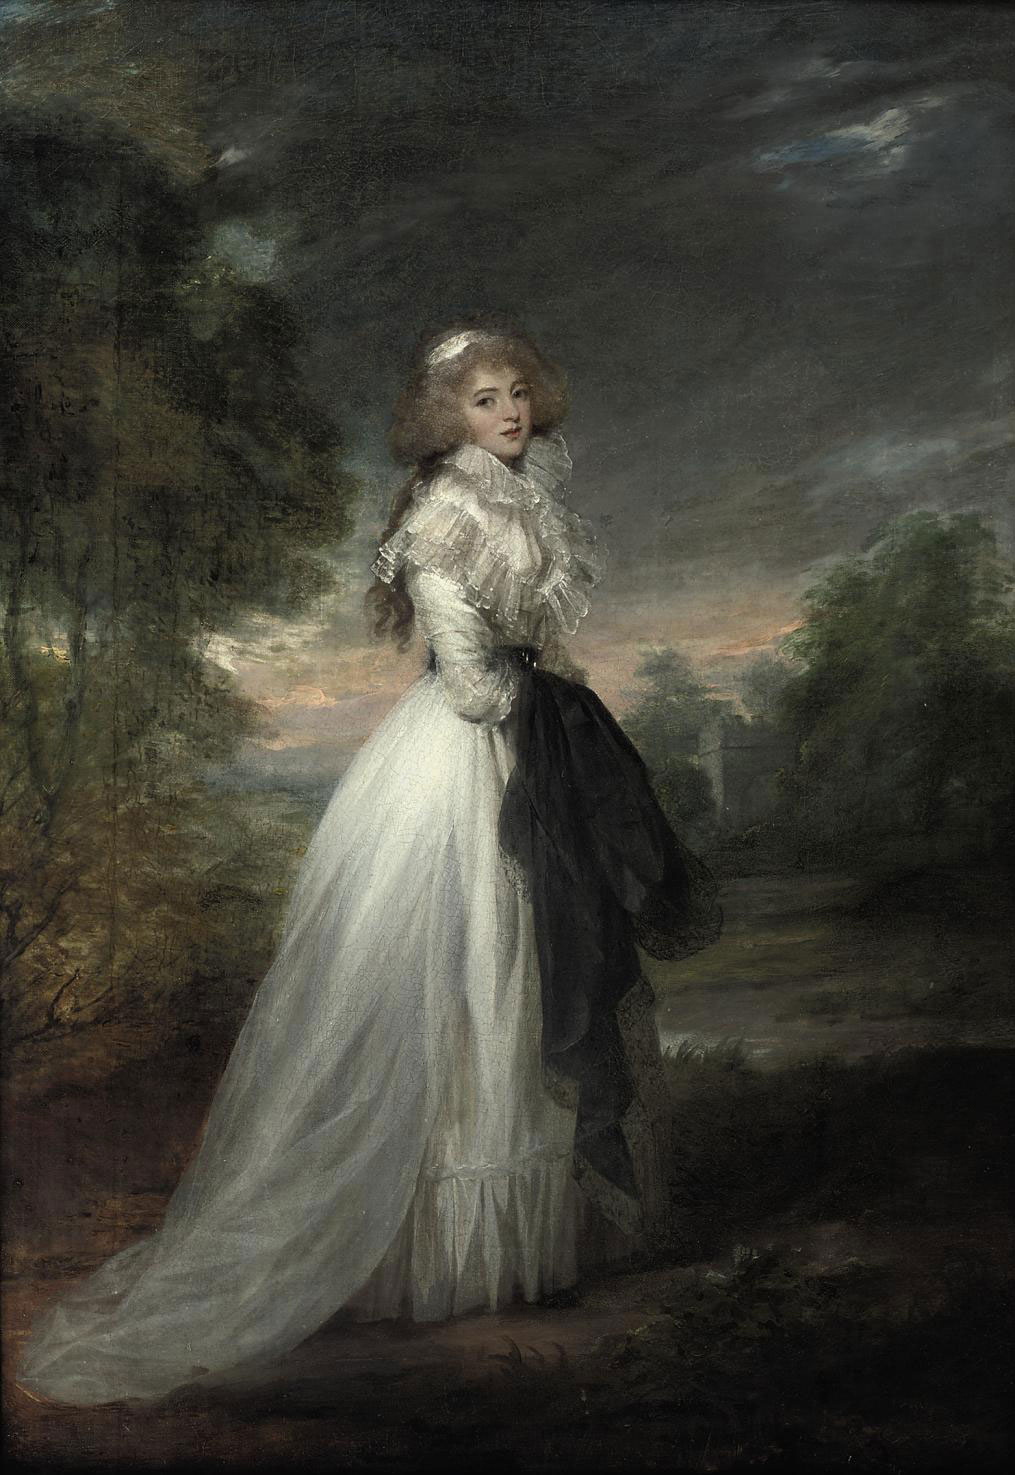 Portrait of a lady, full-length, in a white dress, standing in a park landscape holding a dark robe